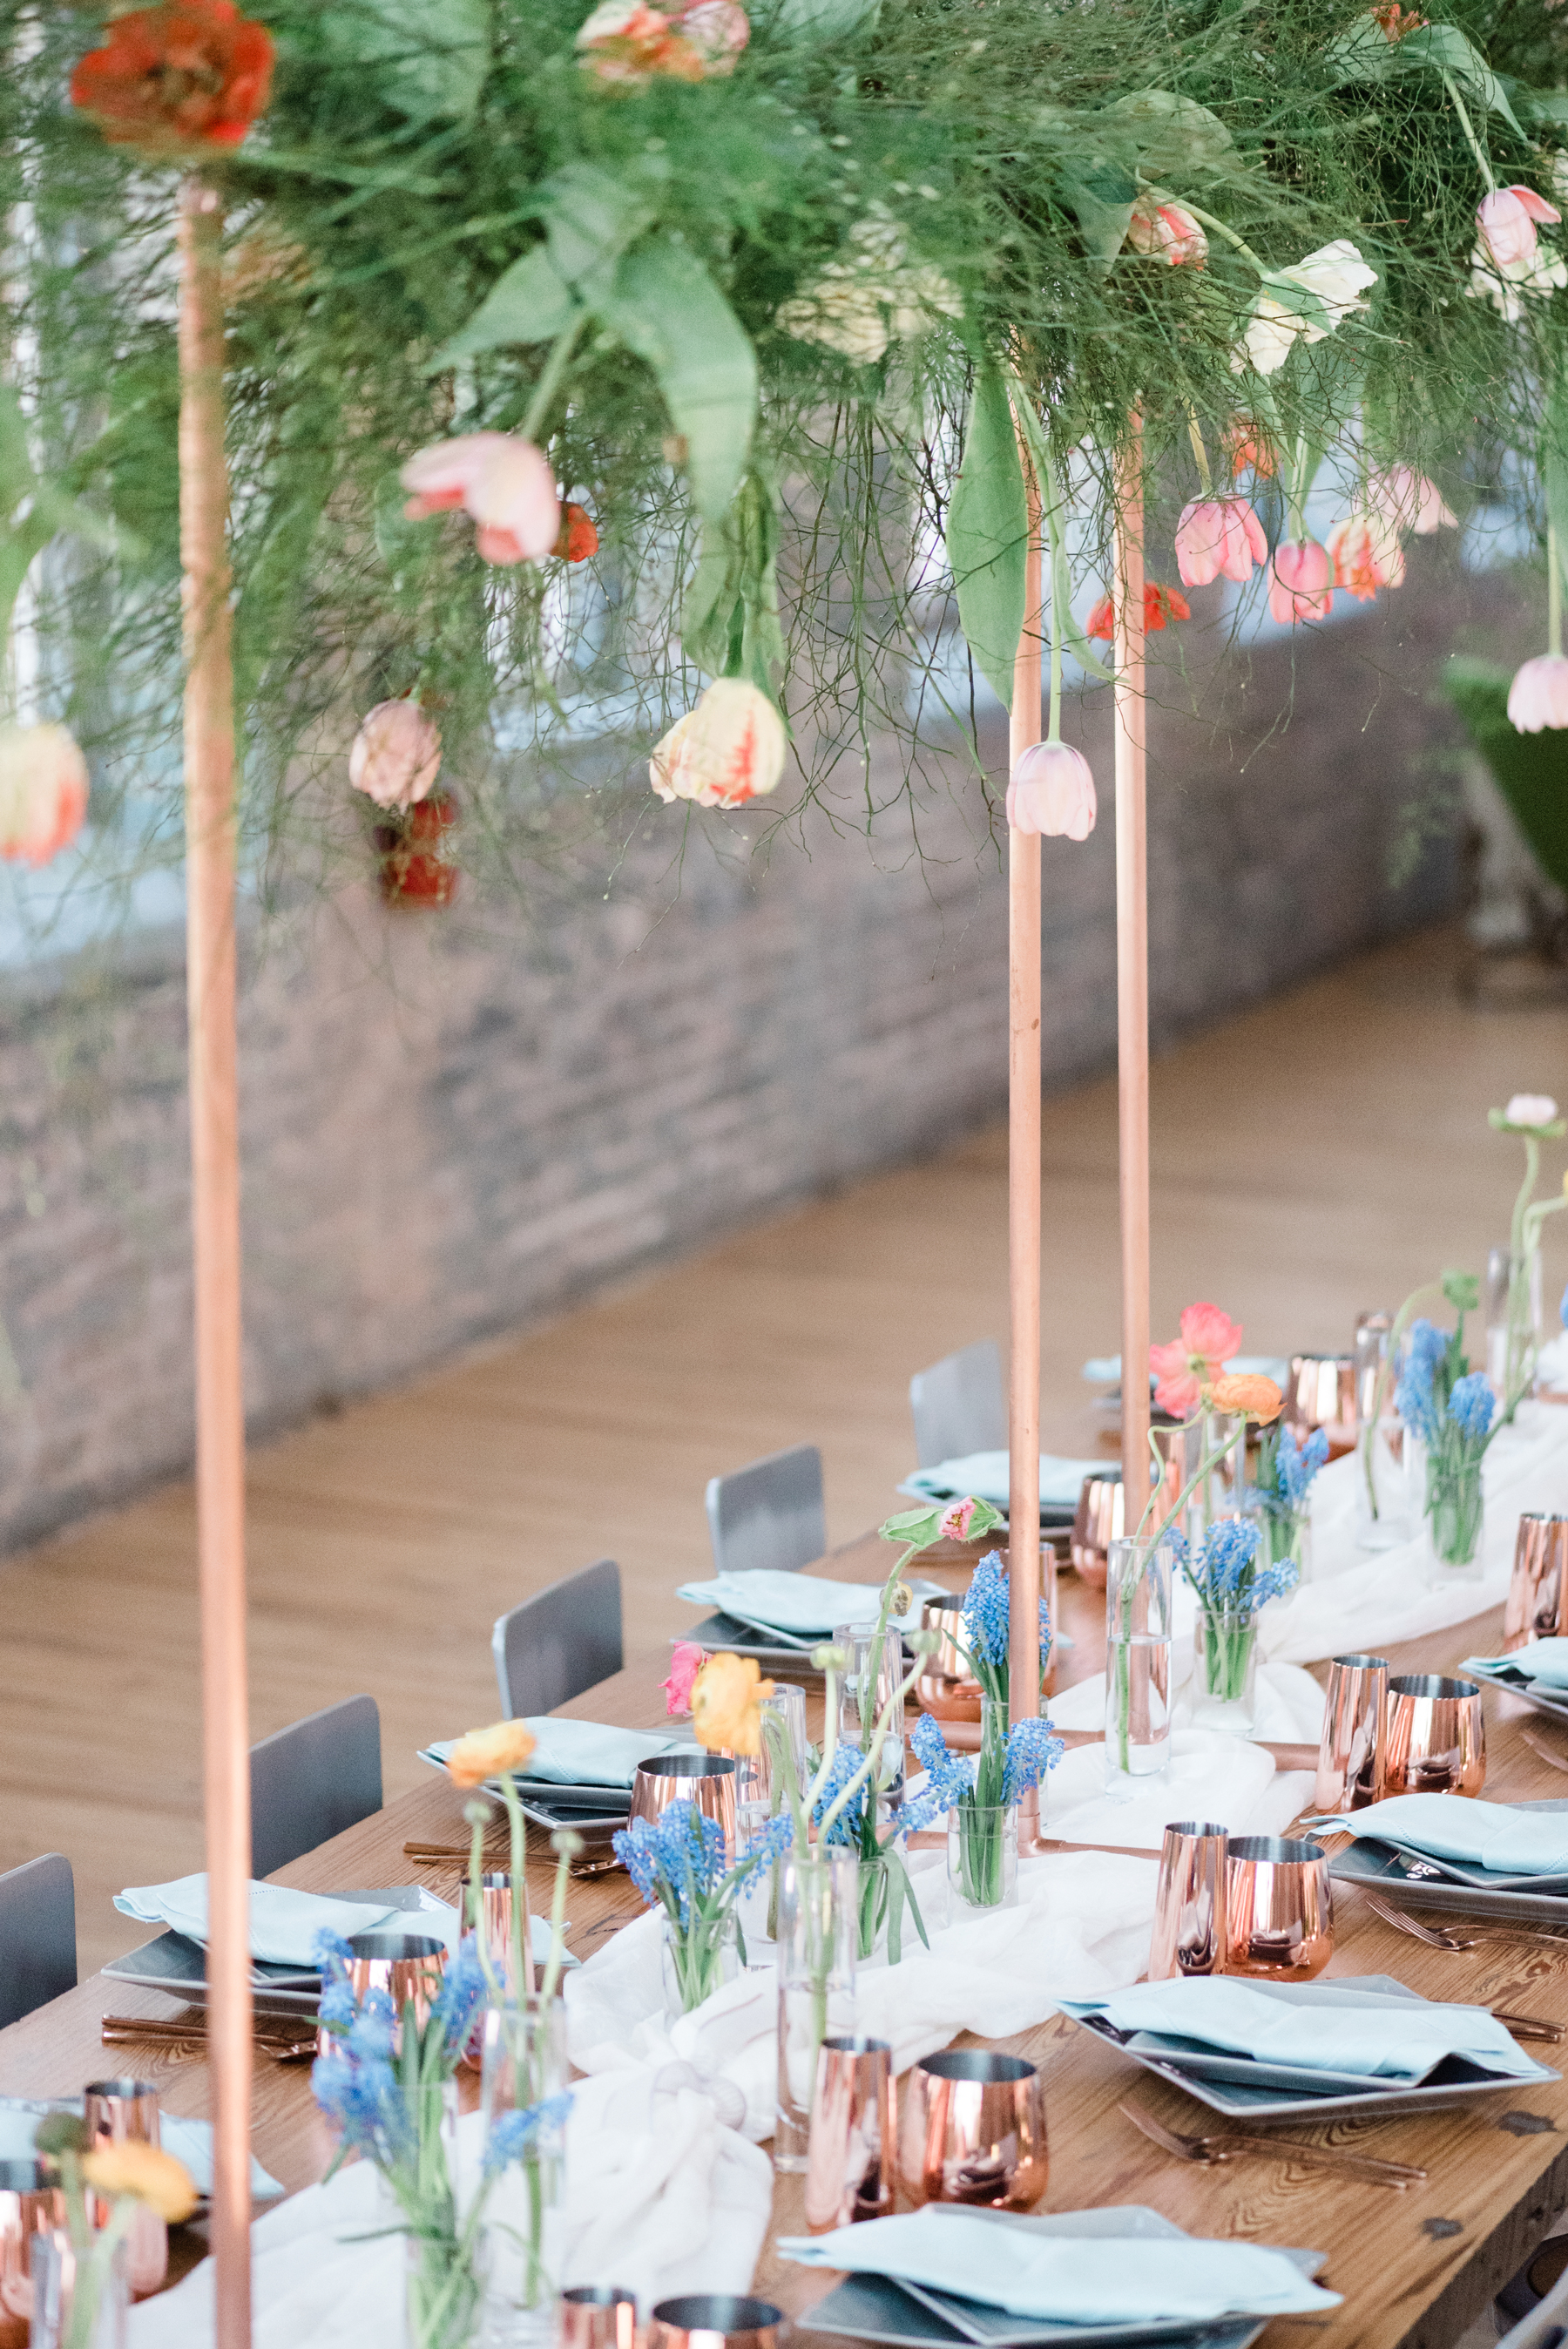 industrial_chic_copper_tulip_wedding_table_decor_mass_moca_hybl_fannin_design_8_1800.jpg